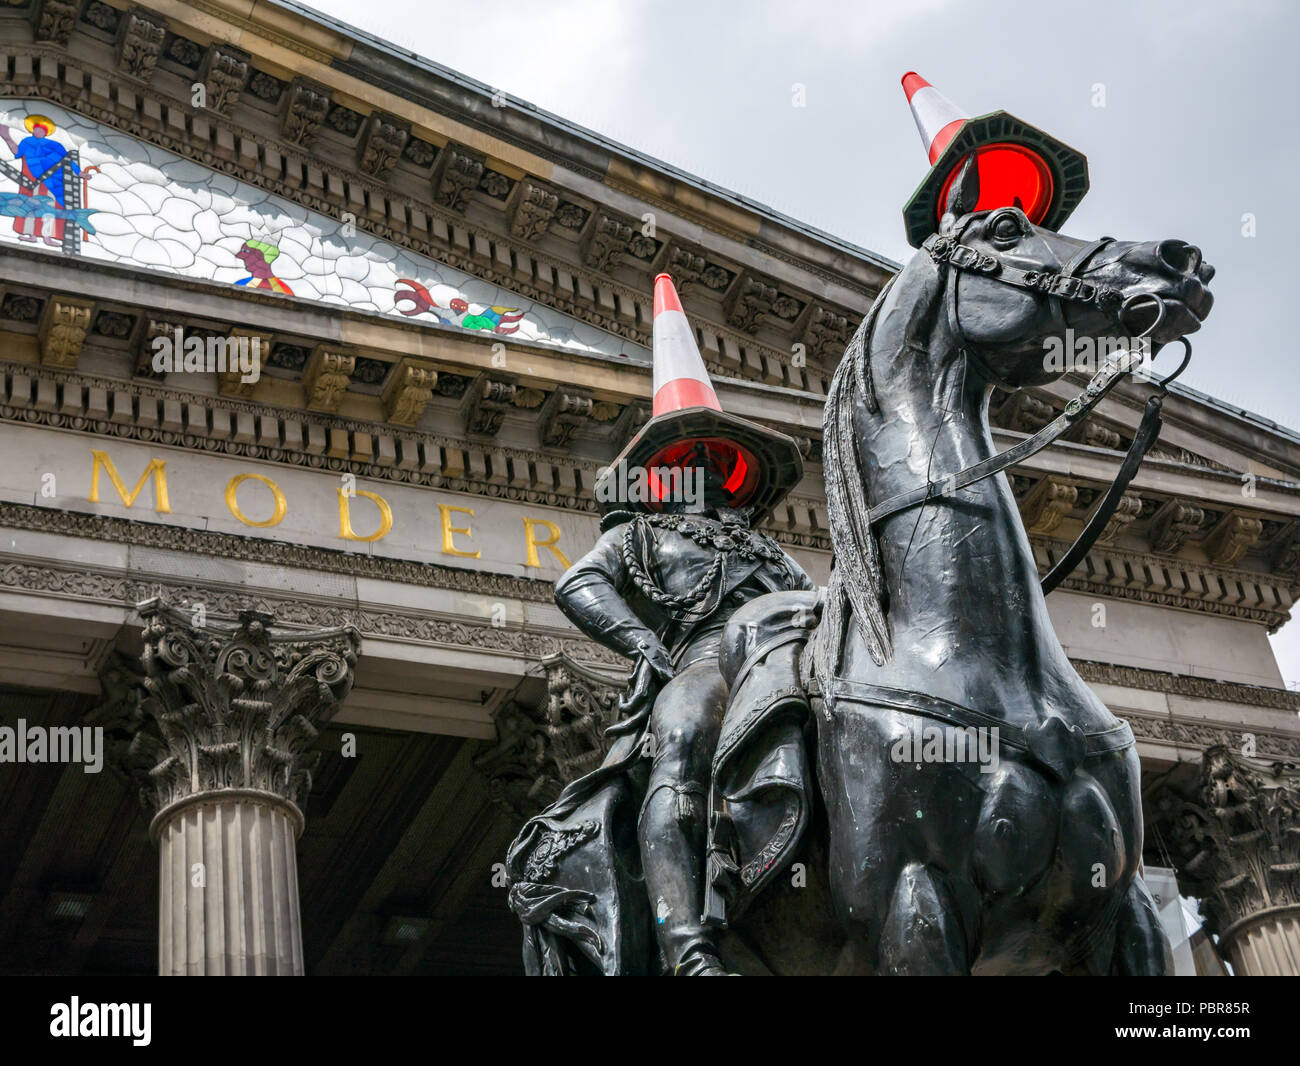 Duke of Wellington statue by Carlo Marochetti with traffic cones, Gallery of Modern Art, GoMA, Royal Exchange Square, Glasgow, Scotland, UK - Stock Image